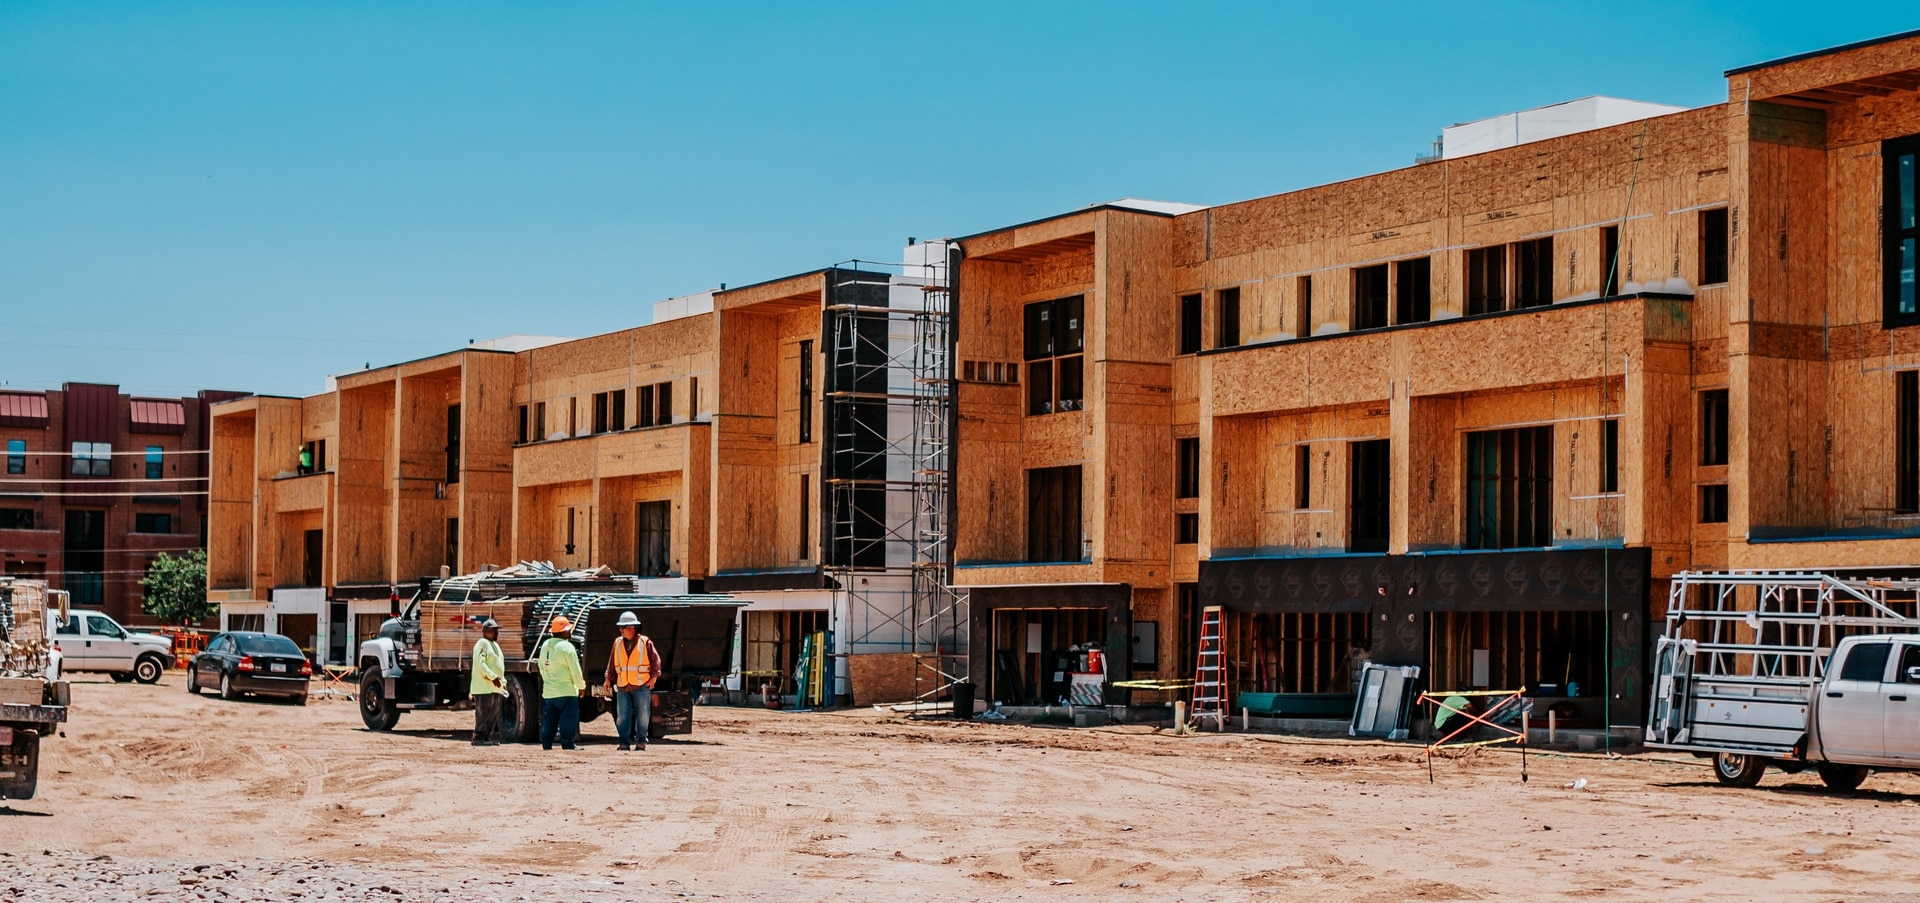 The Roosevelt Townhomes during construction phase